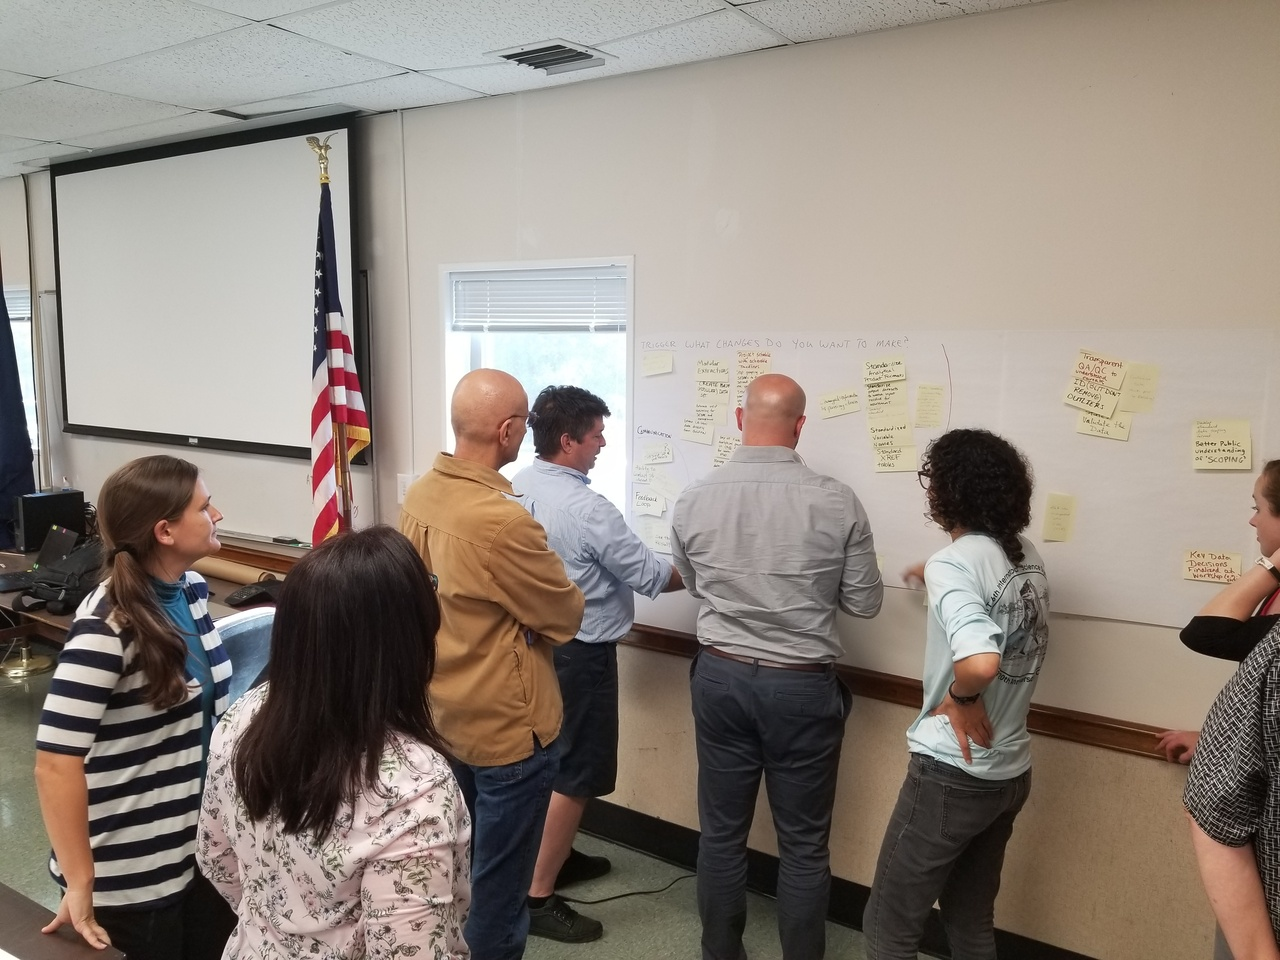 The workshop attendees collaborate on a mapping exercise.